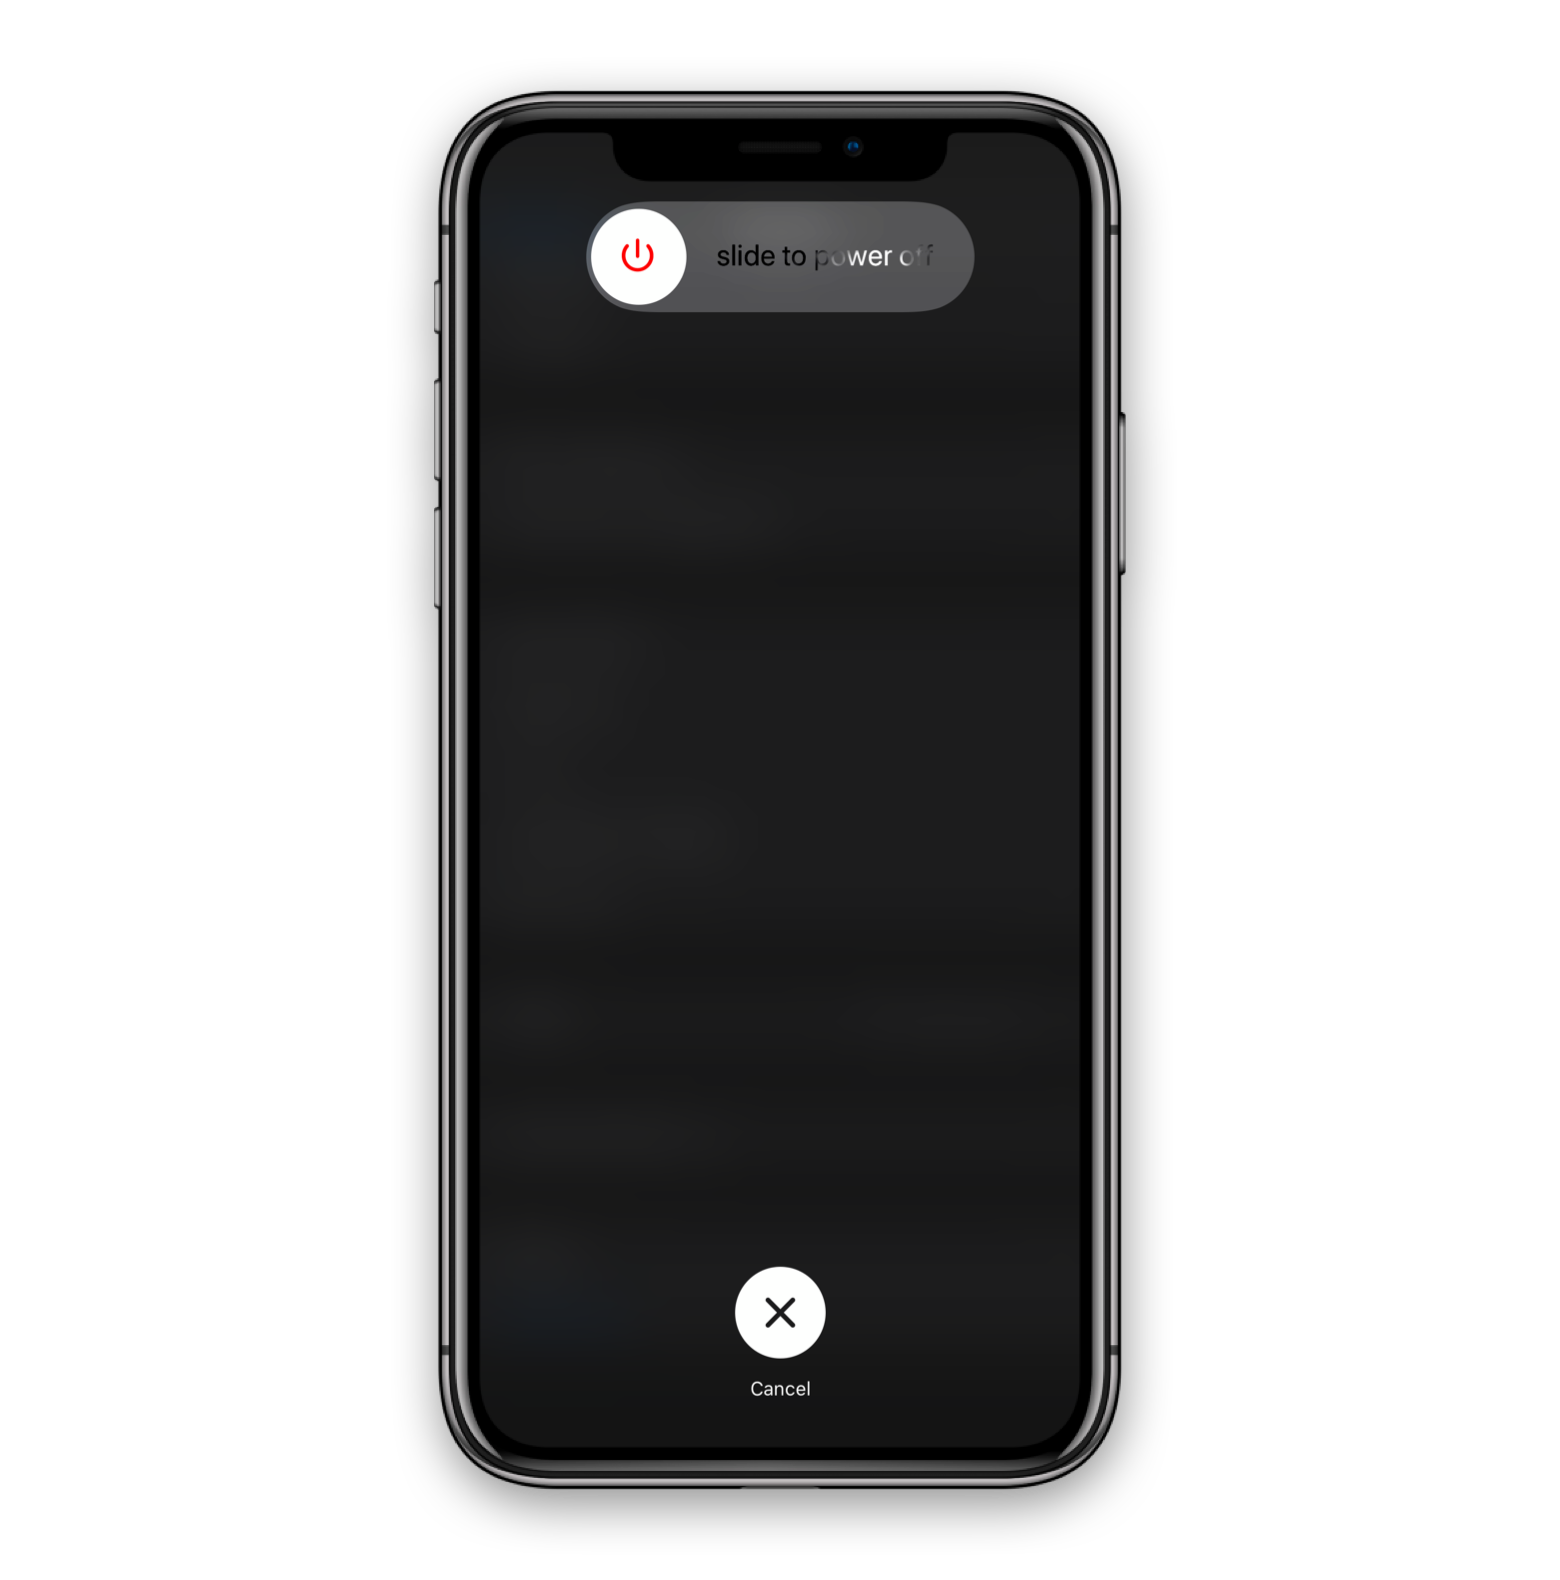 swipe to turn off iPhone